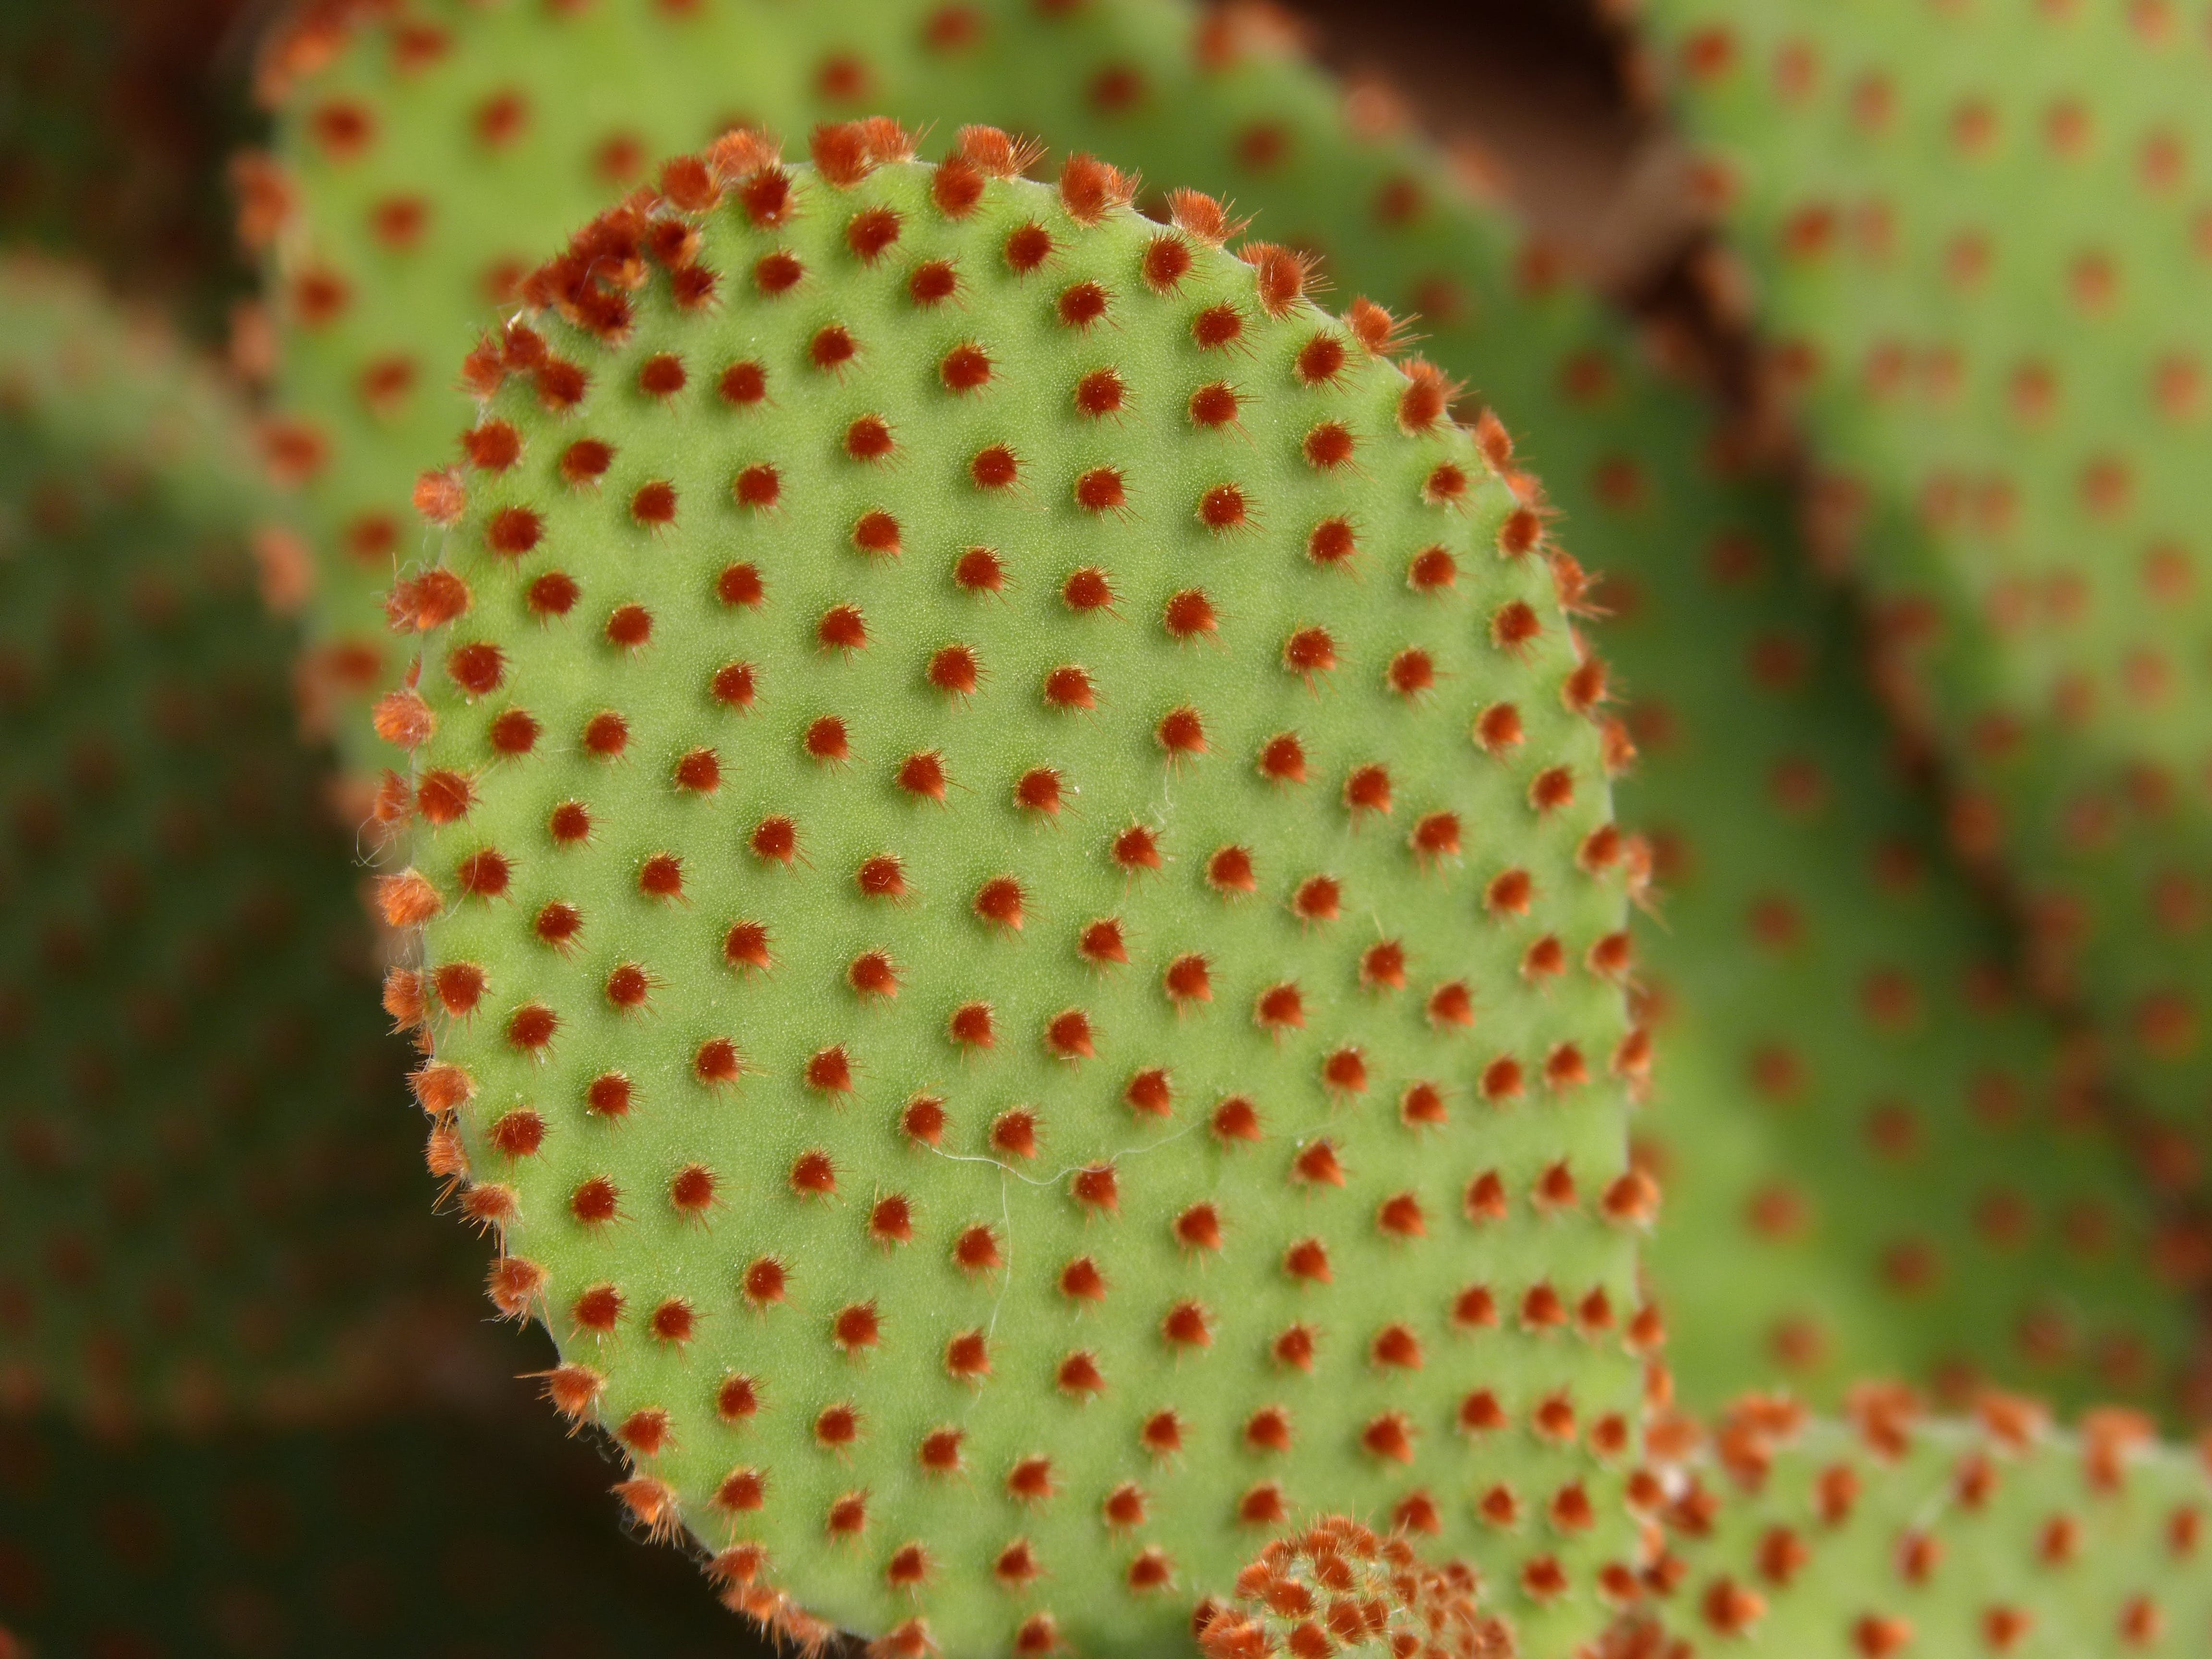 Gratis stockfoto met cactus, close-up, fabriek, groen